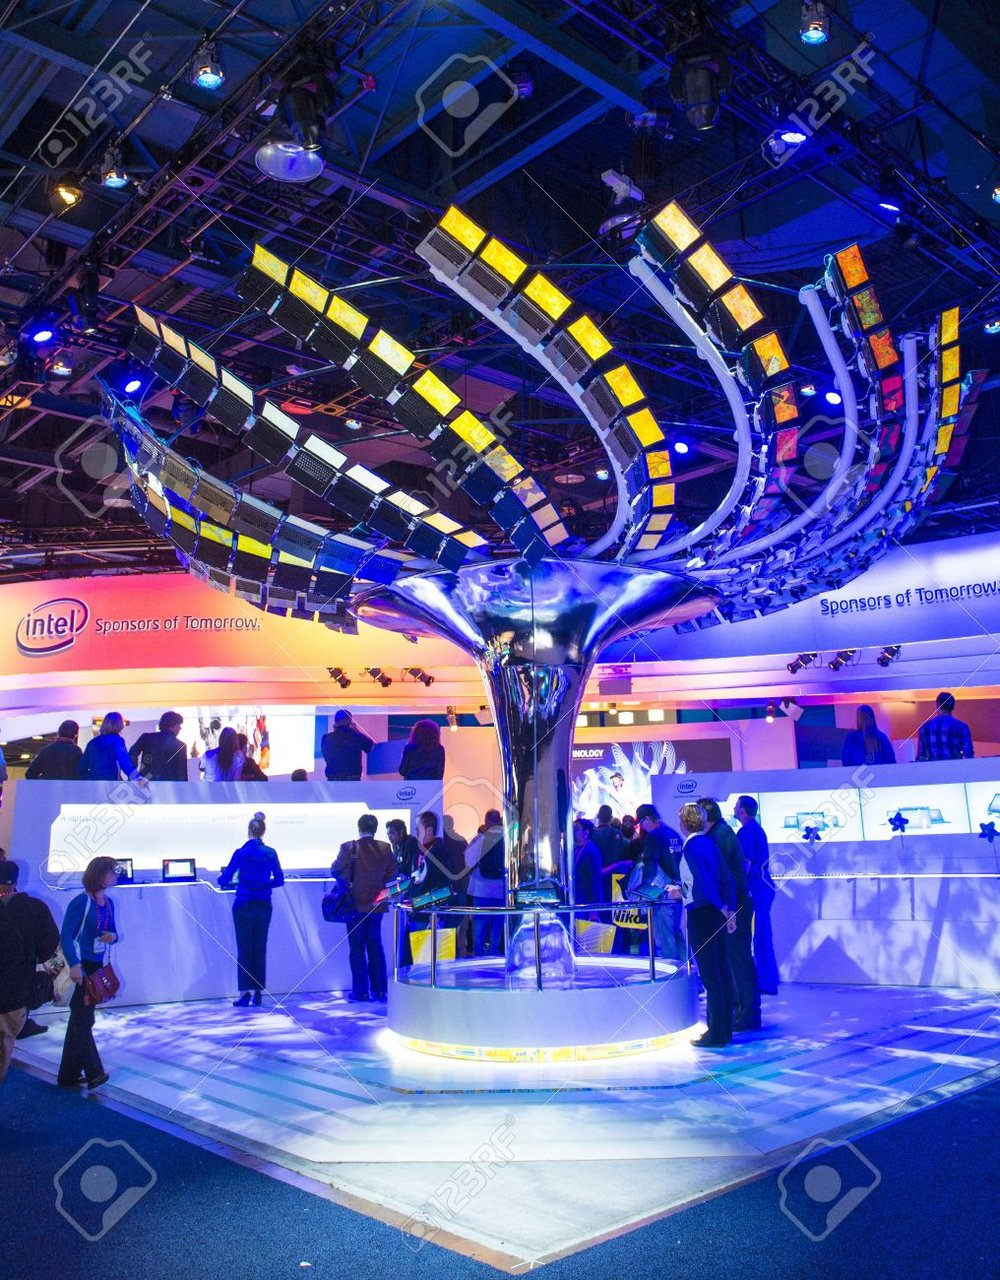 17326886-las-vegas---january-11-an-interactive-ultrabook-tree-at-the-intel-booth-at-ces-show-held-in-las-vega-Stock-Photo.jpg